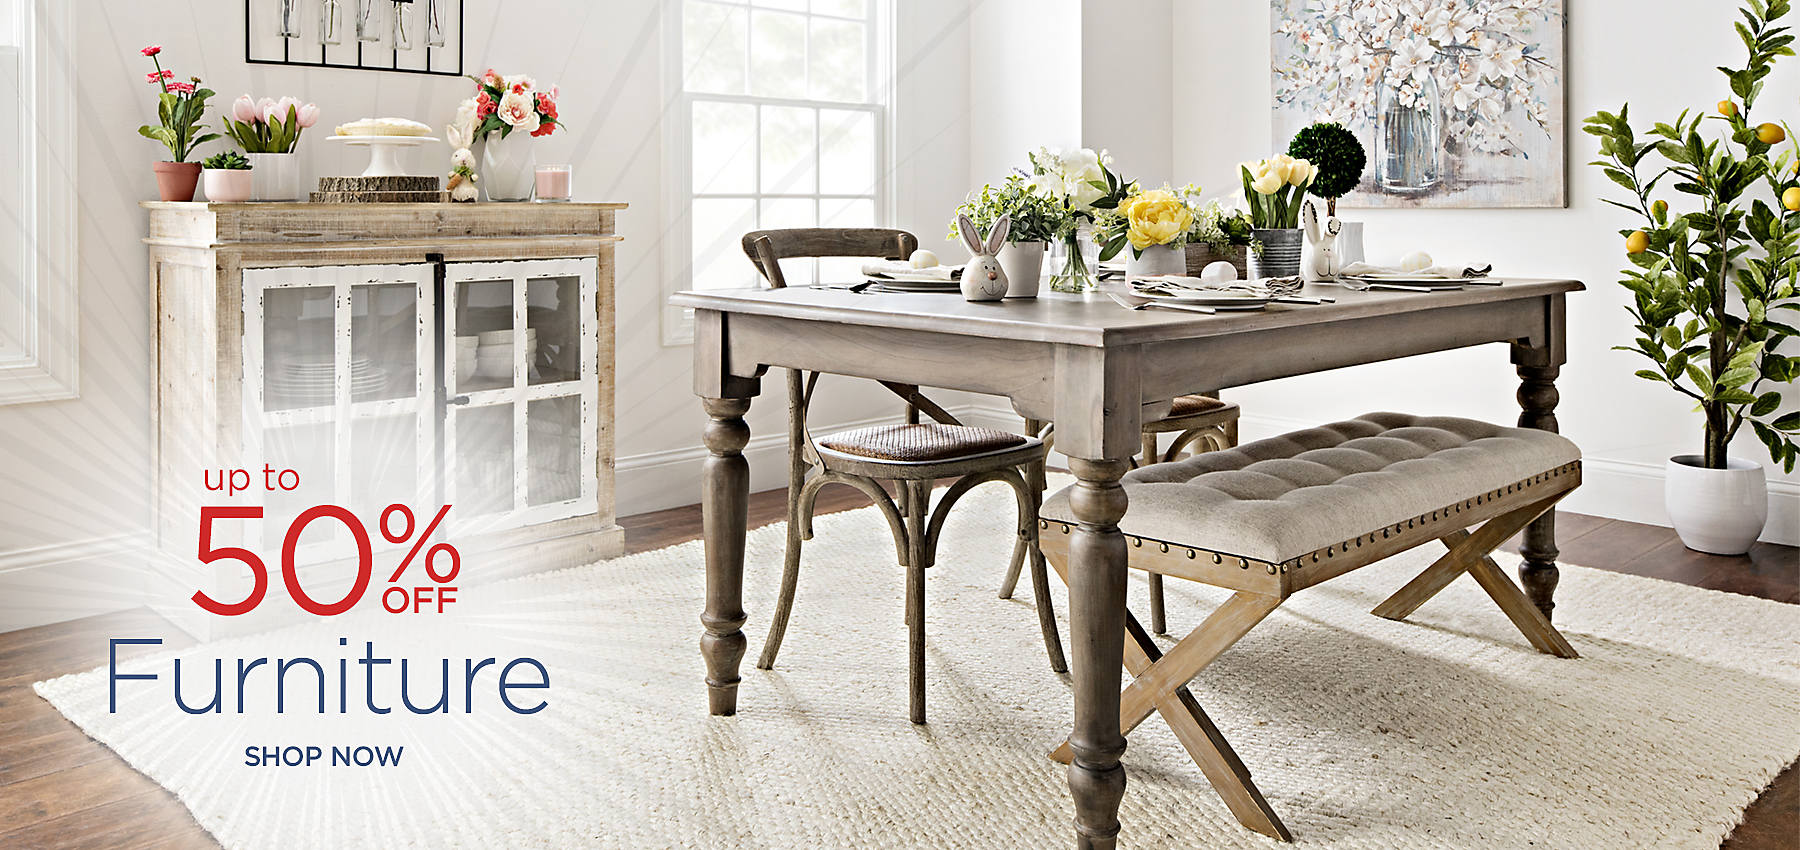 Up to 50% Off Furniture - Shop Now